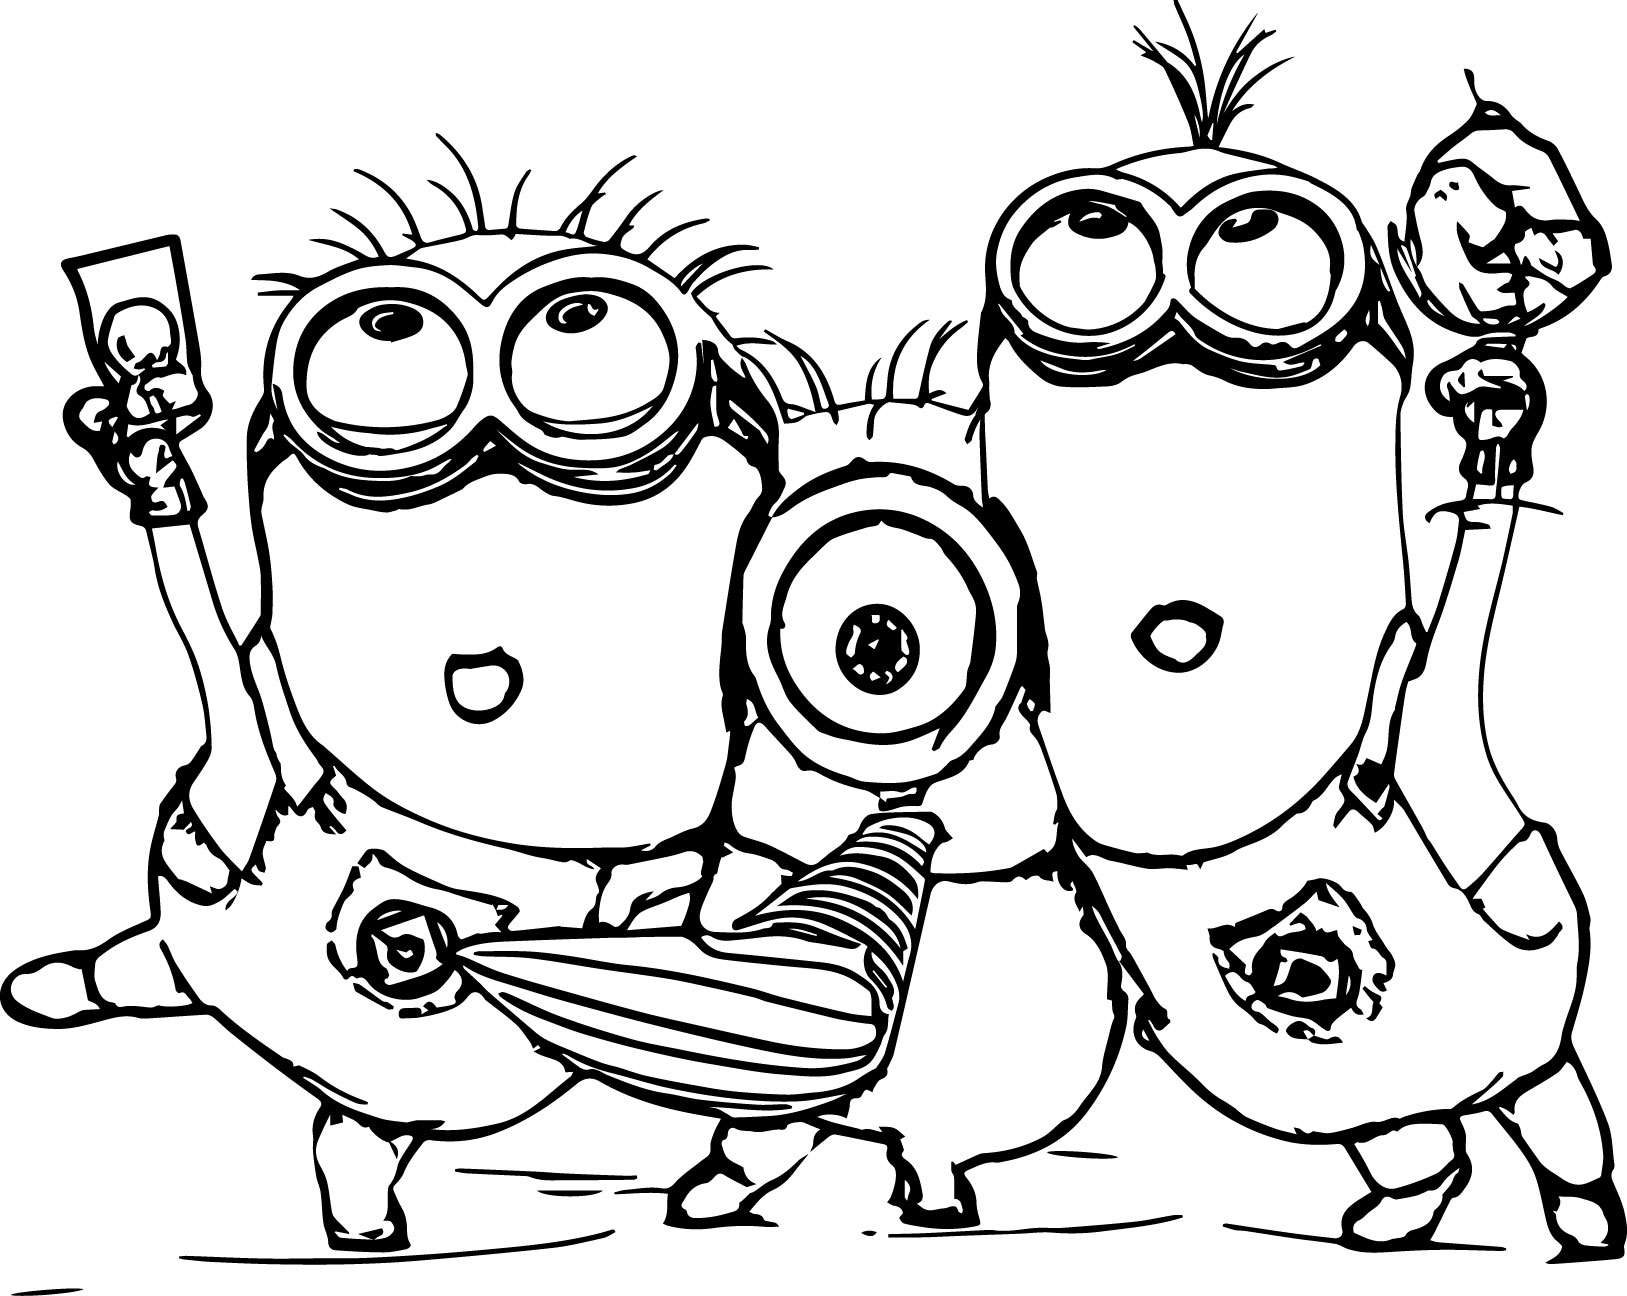 minion printable coloring pages minion coloring pages best coloring pages for kids minion pages printable coloring